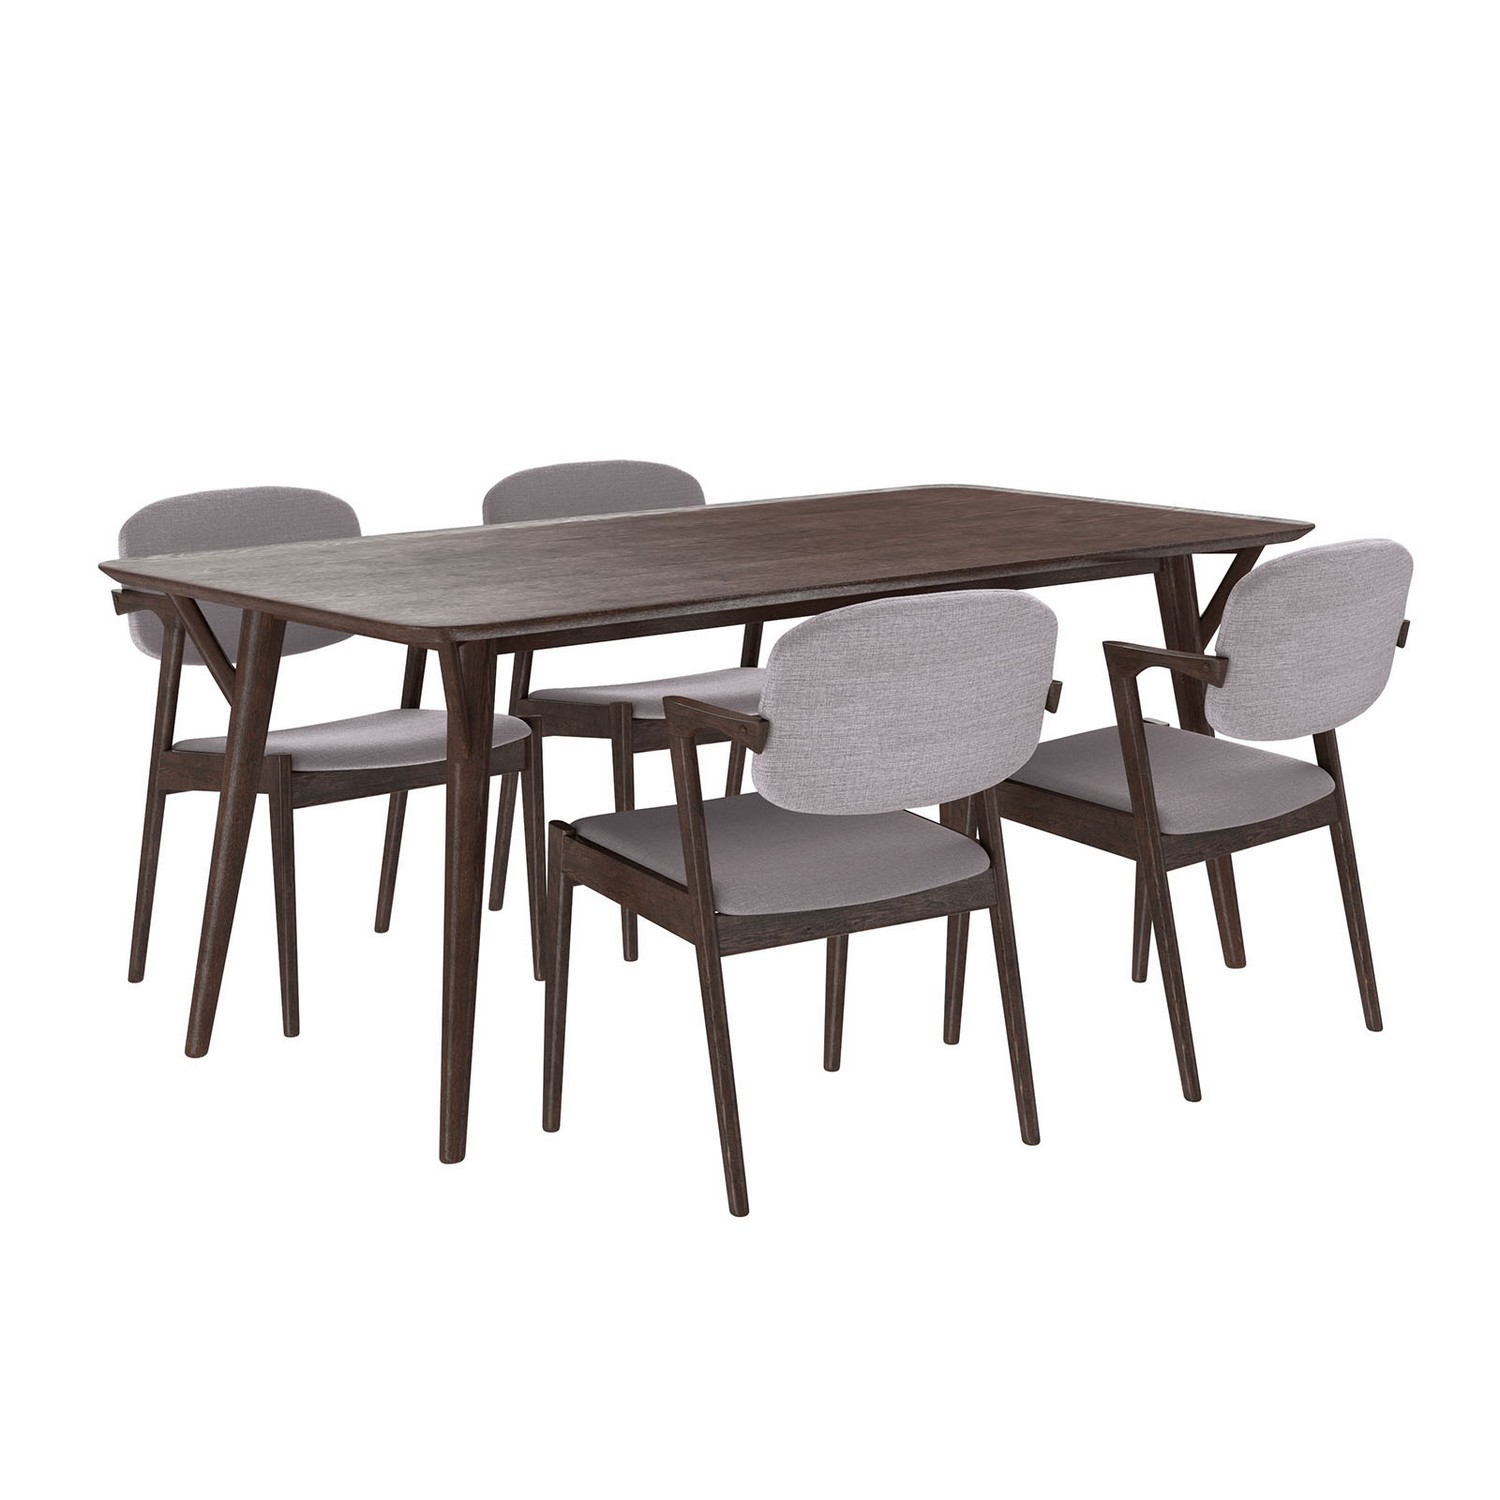 Modway Mid-Century Dining Set Wood Set of 5 - Walnut Gray